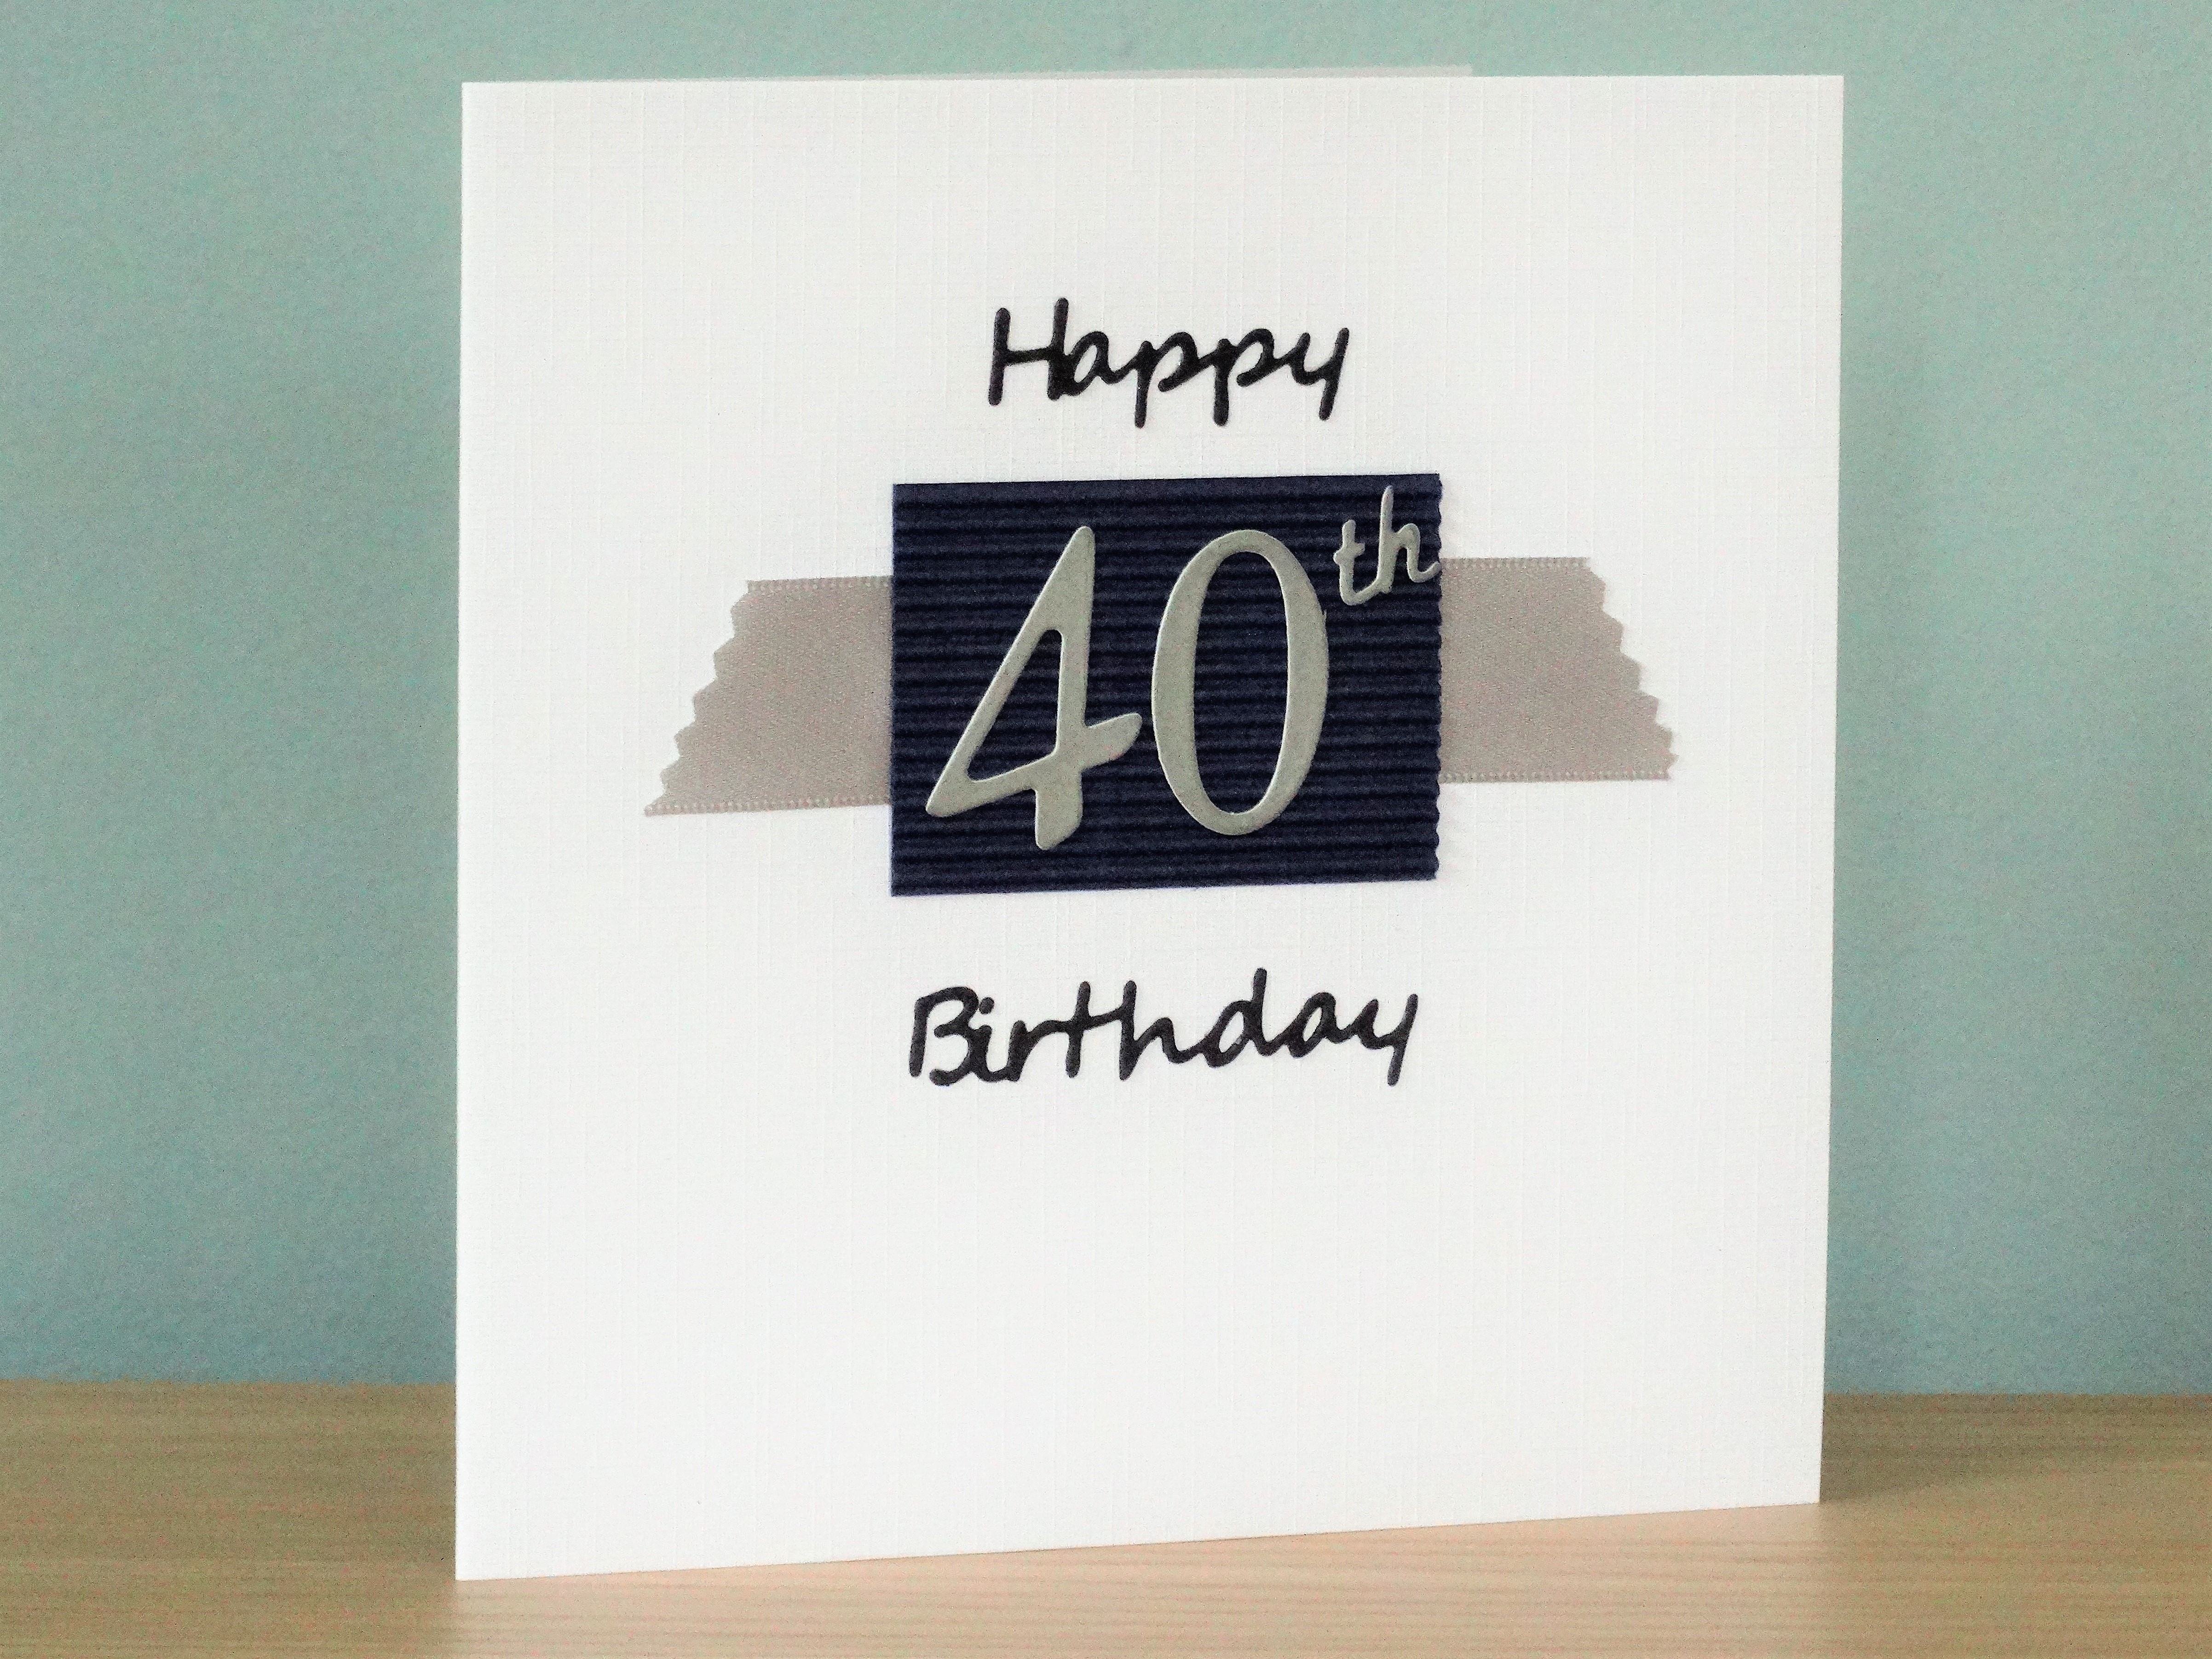 40 Birthday Card Ideas Handmade Greeting Cards A 40th Birthday Card In Pink Or Blue For A Young 40 Year Old